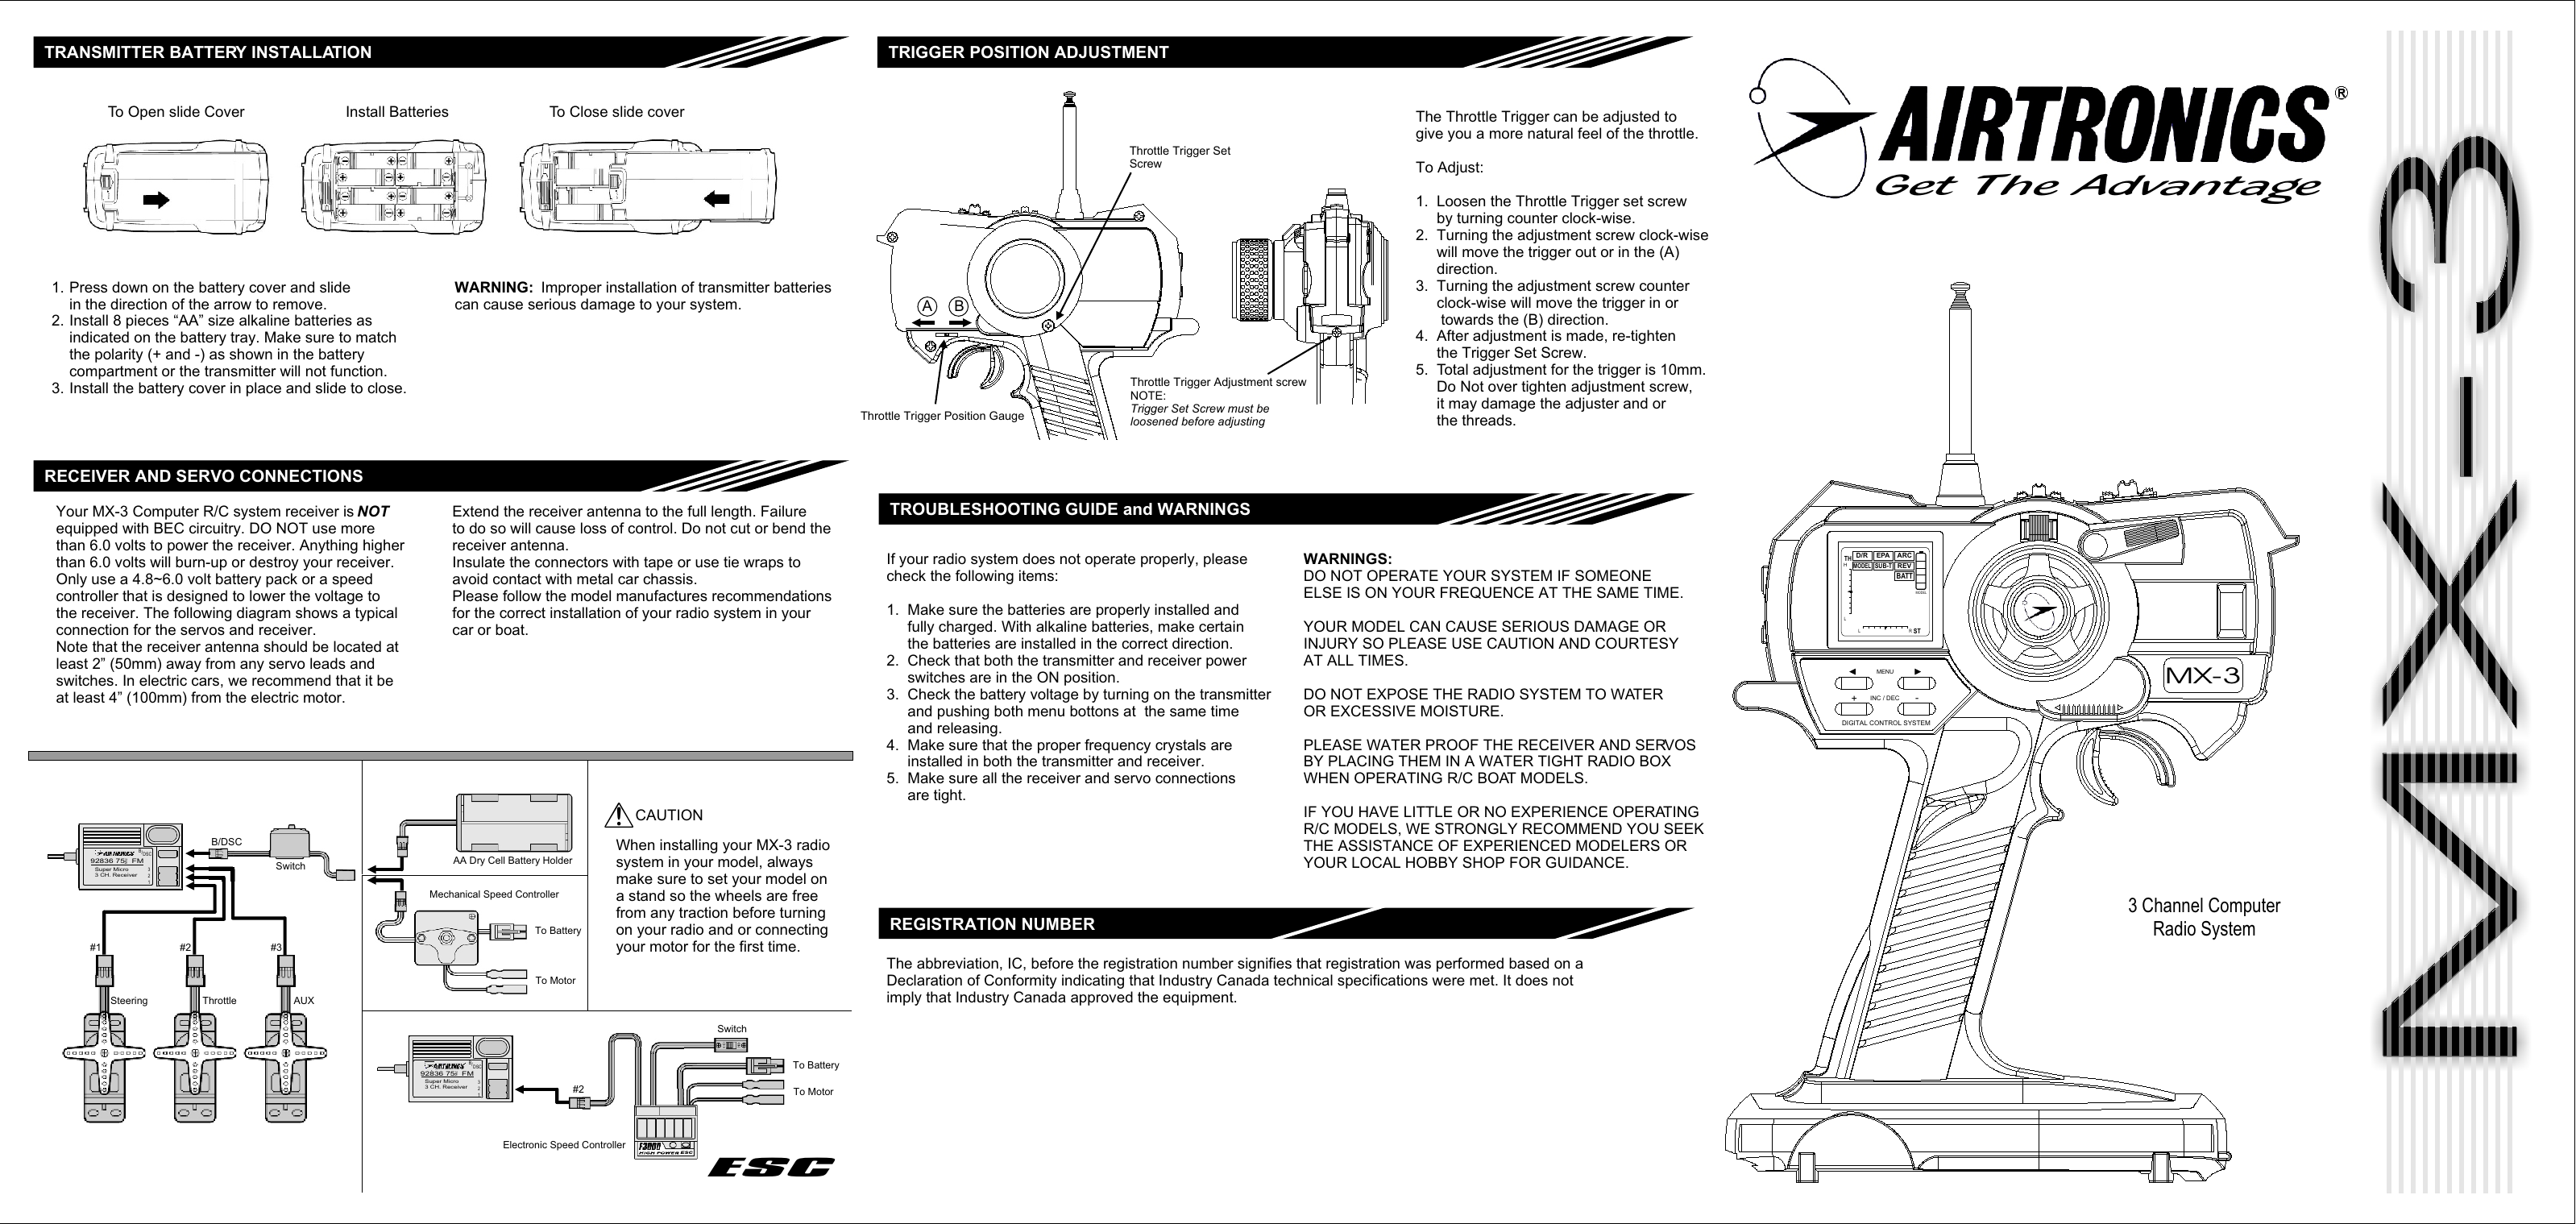 Mx 3 Front Page Manual Sanwa Users Guide Dry Cell Diagram